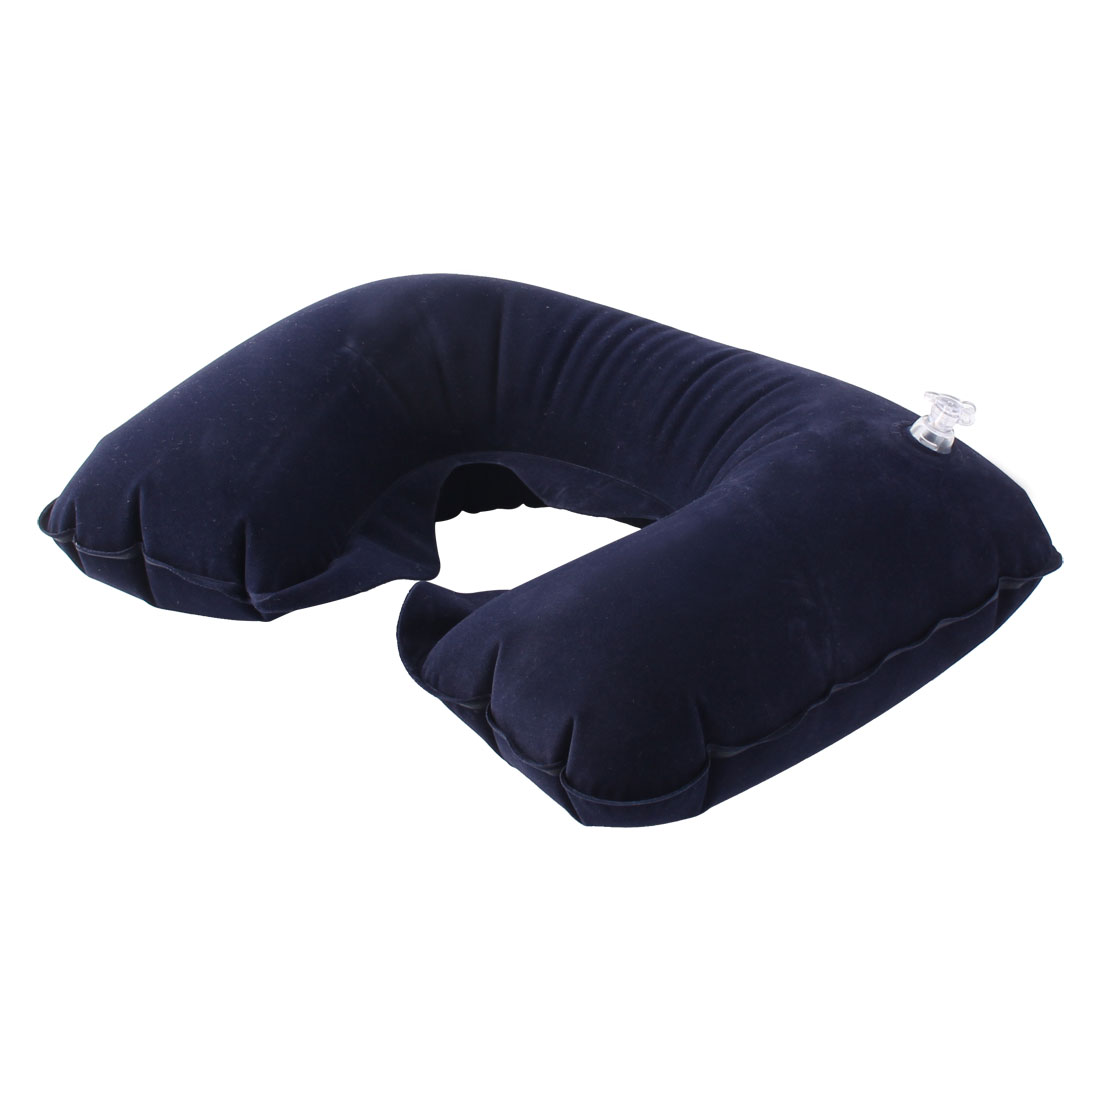 Travel Camping U Shaped Inflatable Head Neck Relief Rest Pillow Support Dark Blue